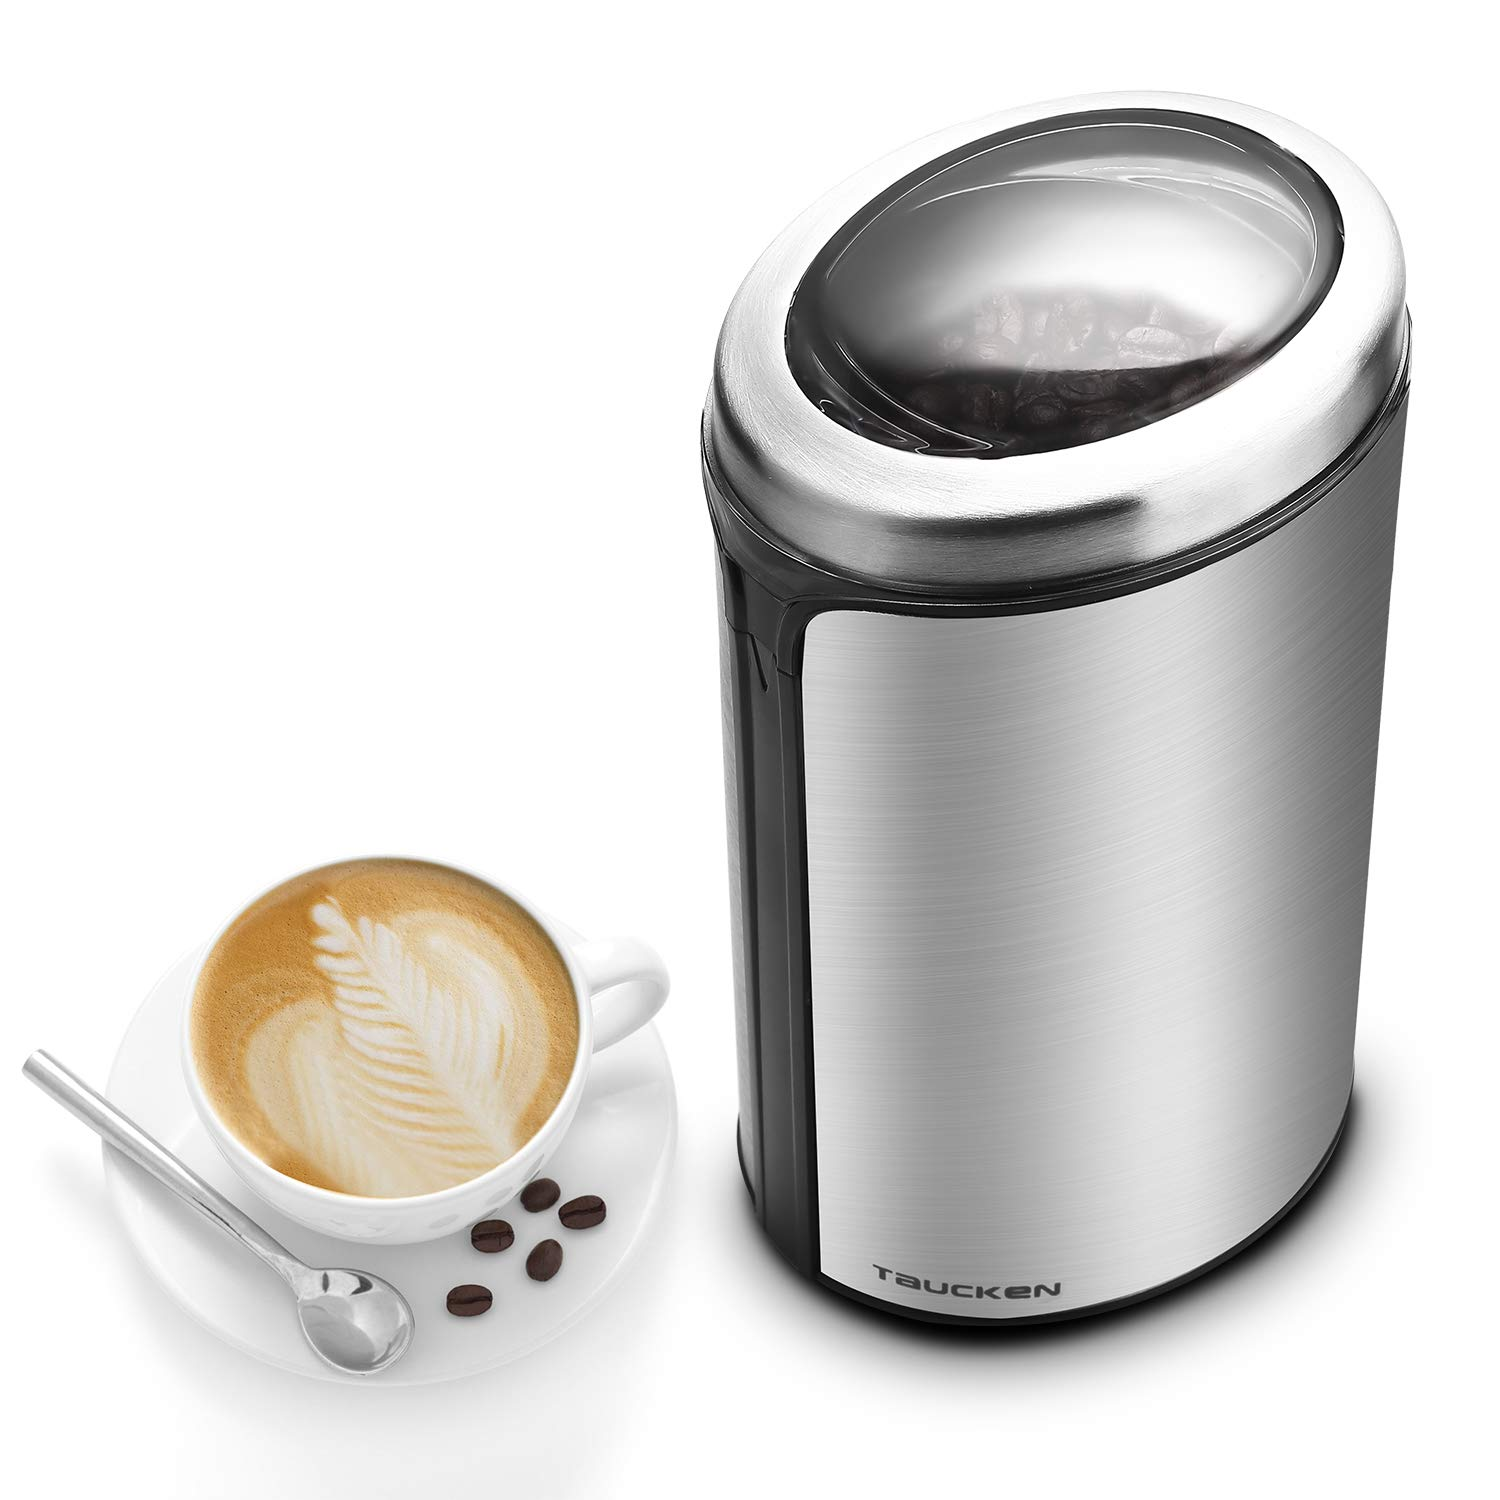 Coffee Grinder - Taucken Ultimate Electric Coffee Grinder, Coffee Bean Grinder Stainless Steel Blade Coffee Grinding Coffee Beans. Durable & Portable Stainless Steel Blades Grinder by Taucken